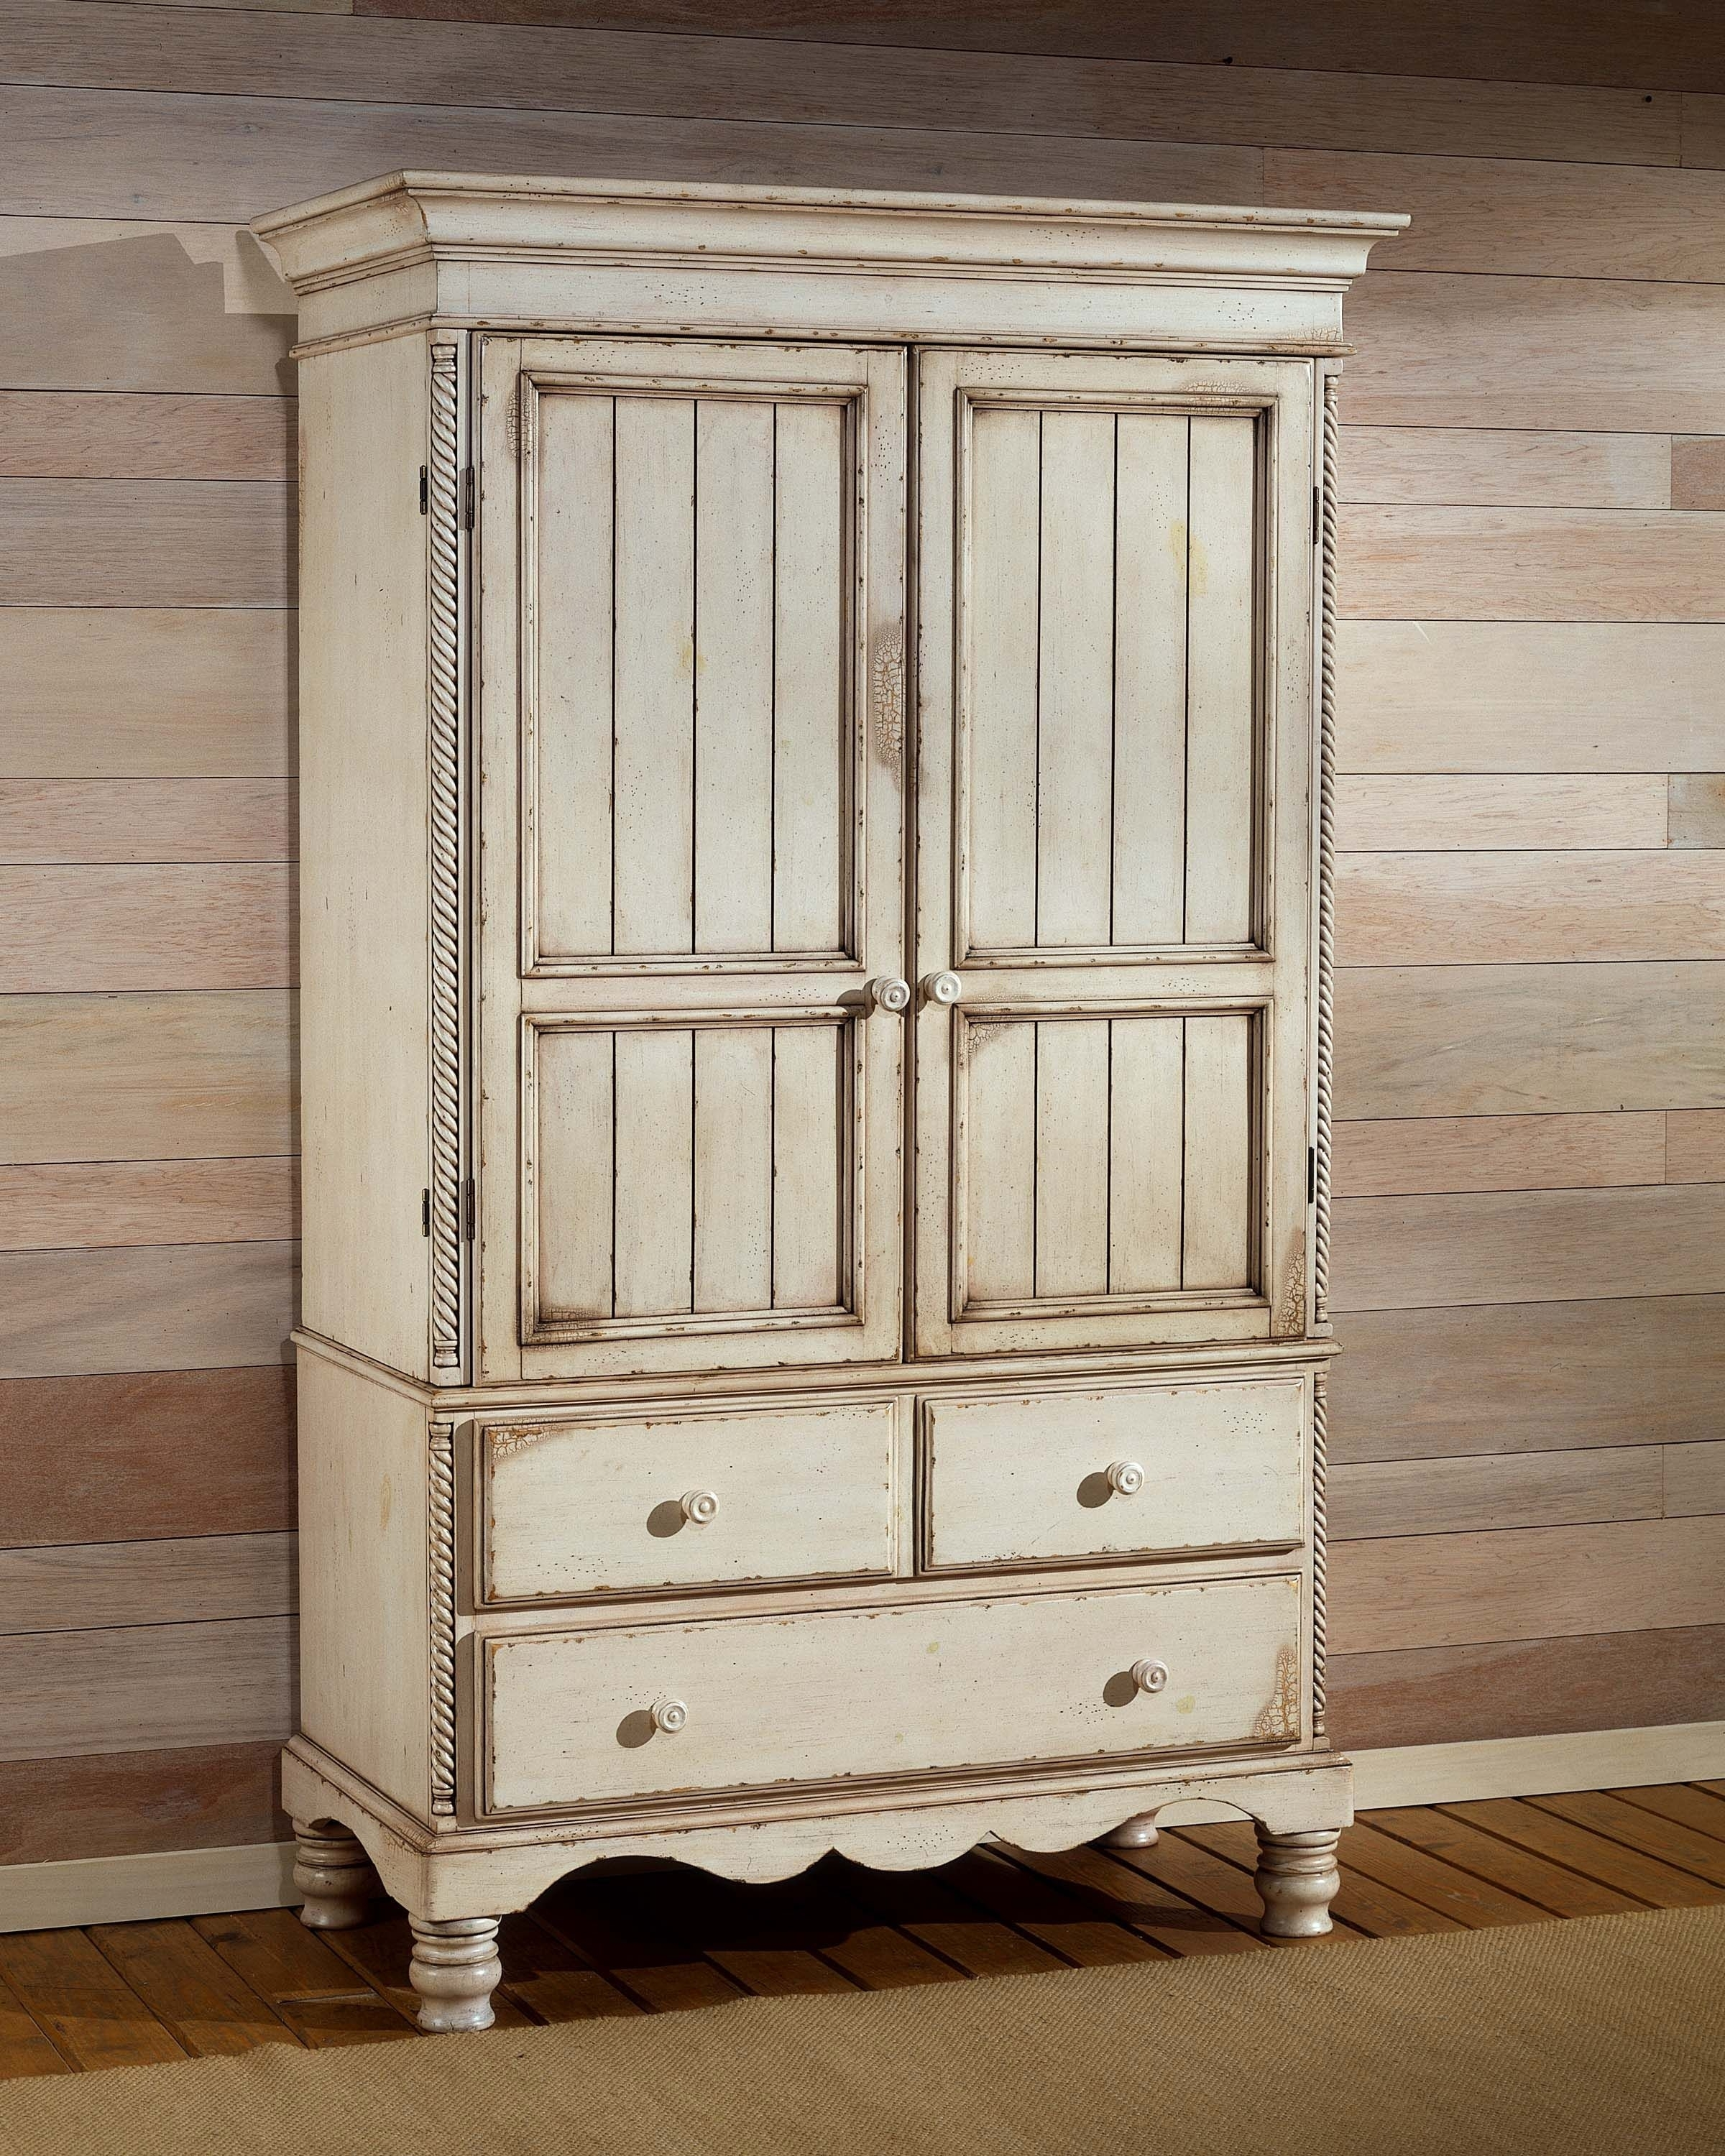 Distressed White Bedroom Furniture Ideas On Foter